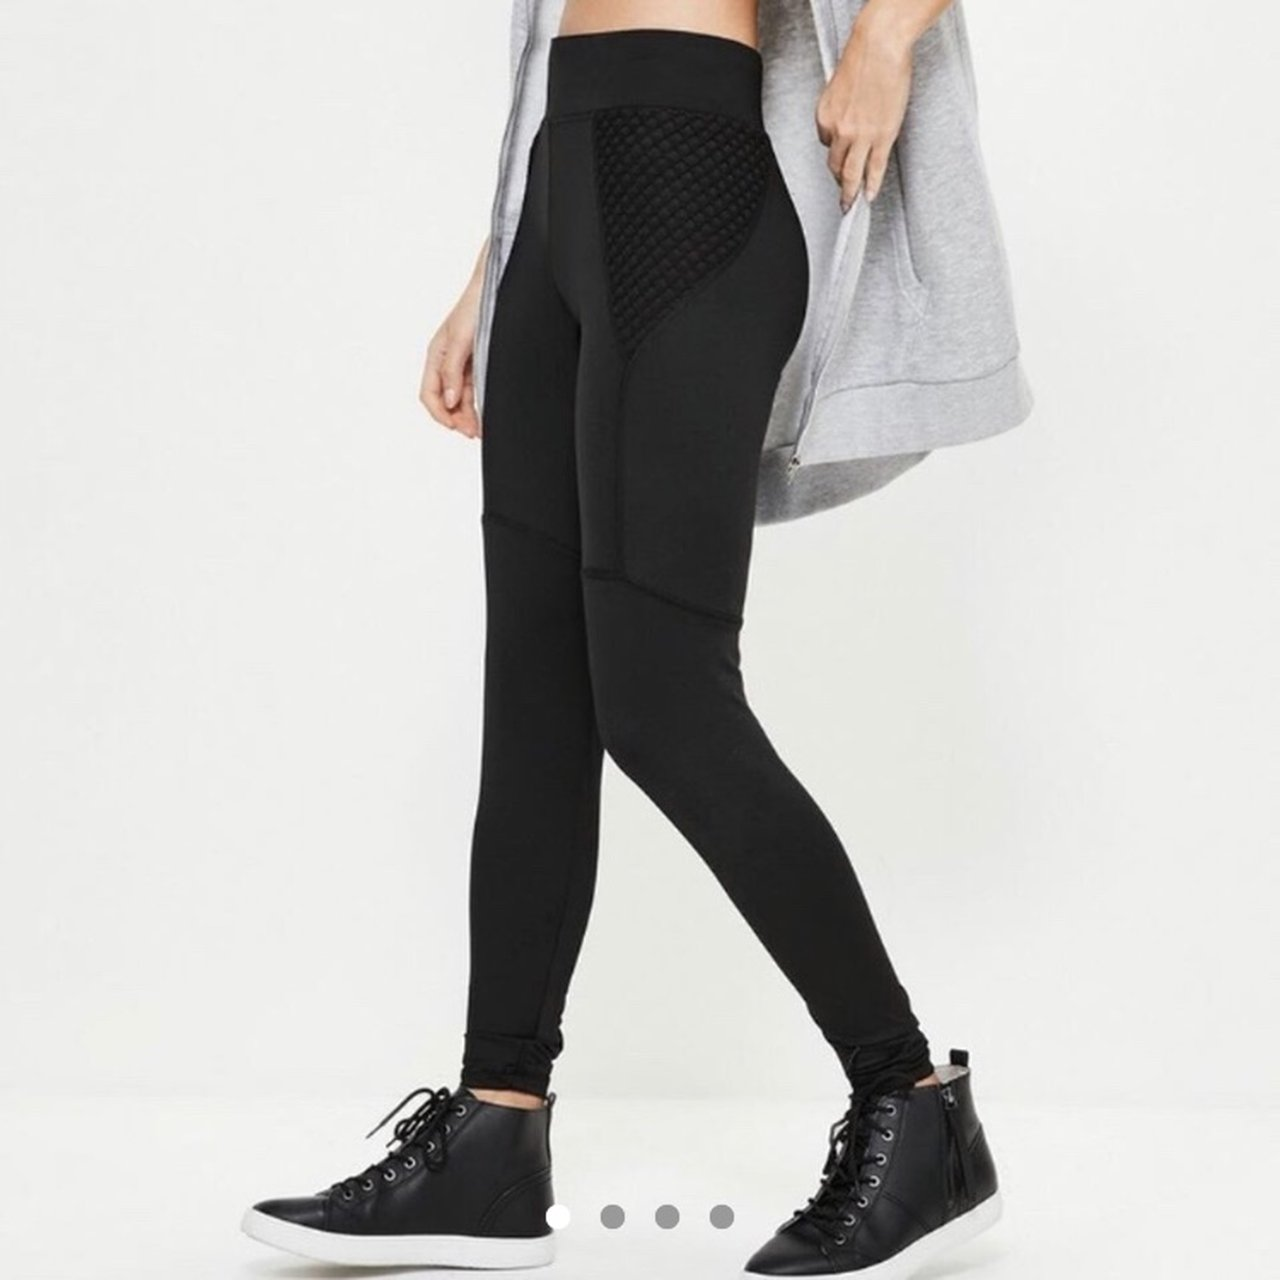 68d2968529d0a5 @natiblanc. 27 days ago. Jersey City, United States. active black fishnet  side sports leggings from missguided ...